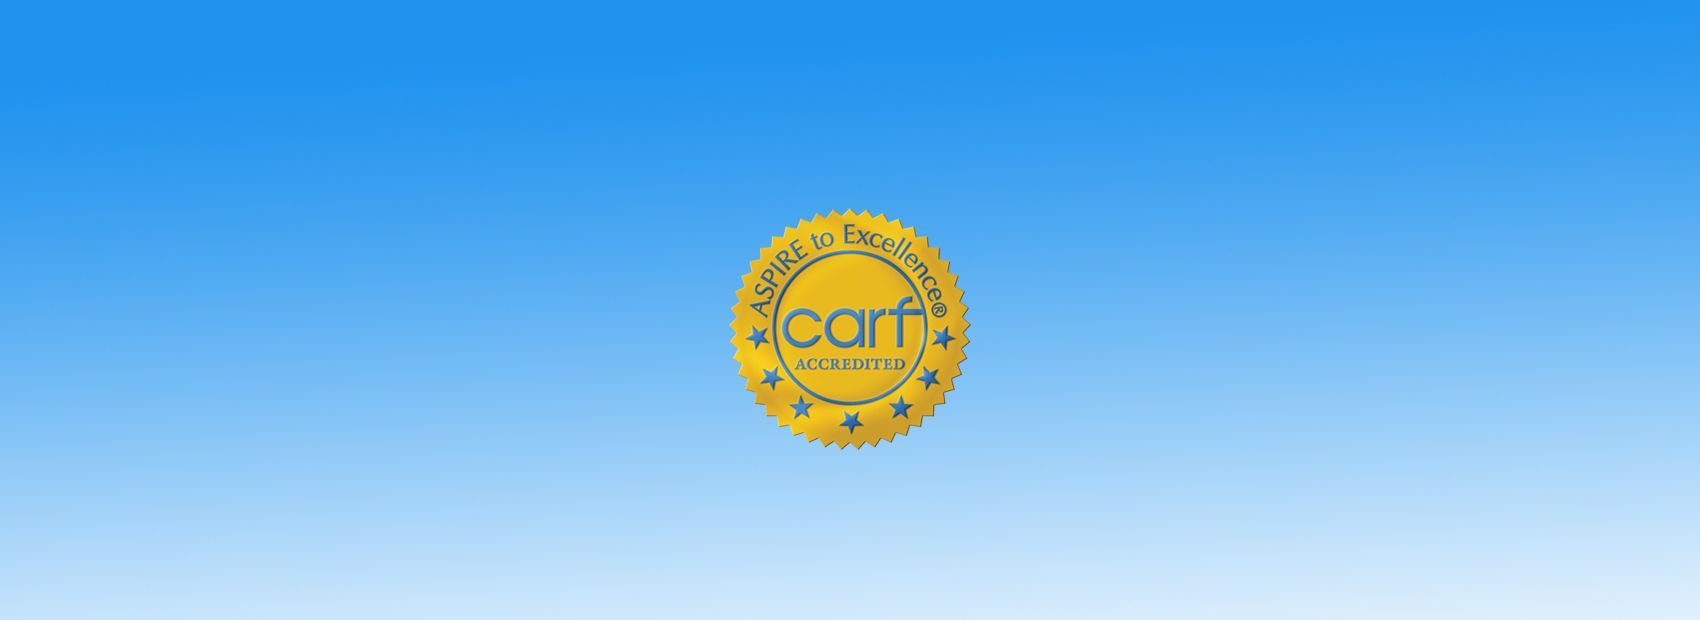 We recently received a 3 year CARF Accreditation.